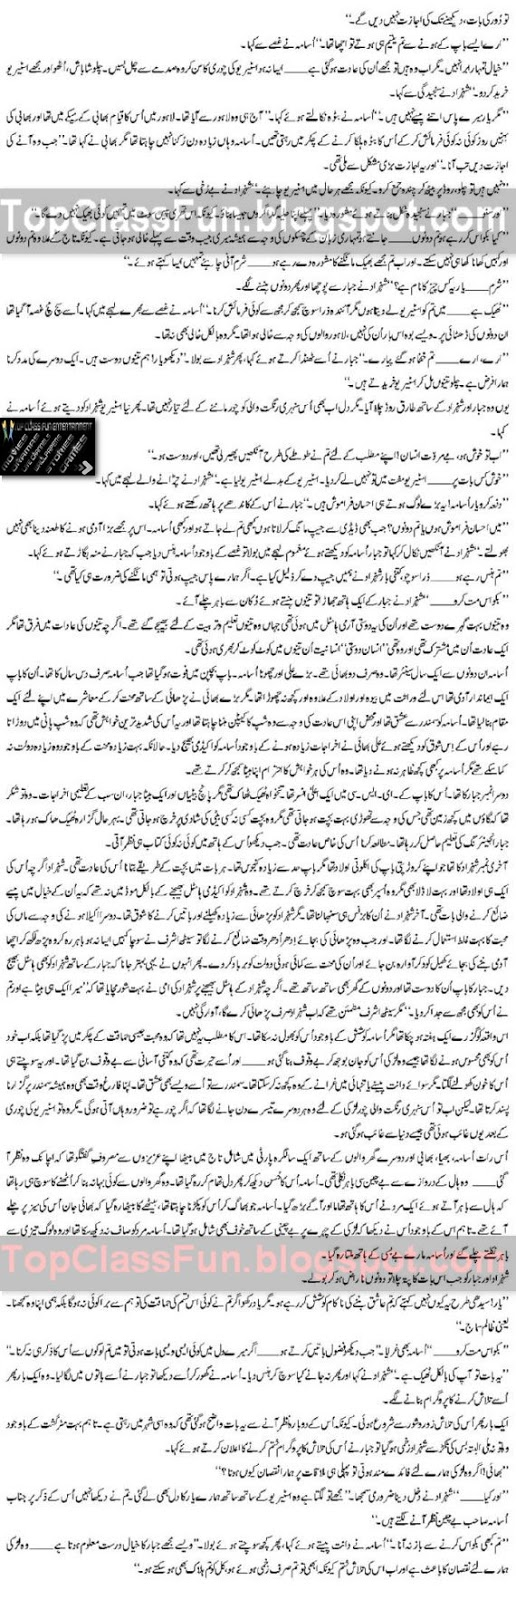 Romantic Urdu Novel - MOHABBAT – By Shahina Chanda Mehtab Page 3